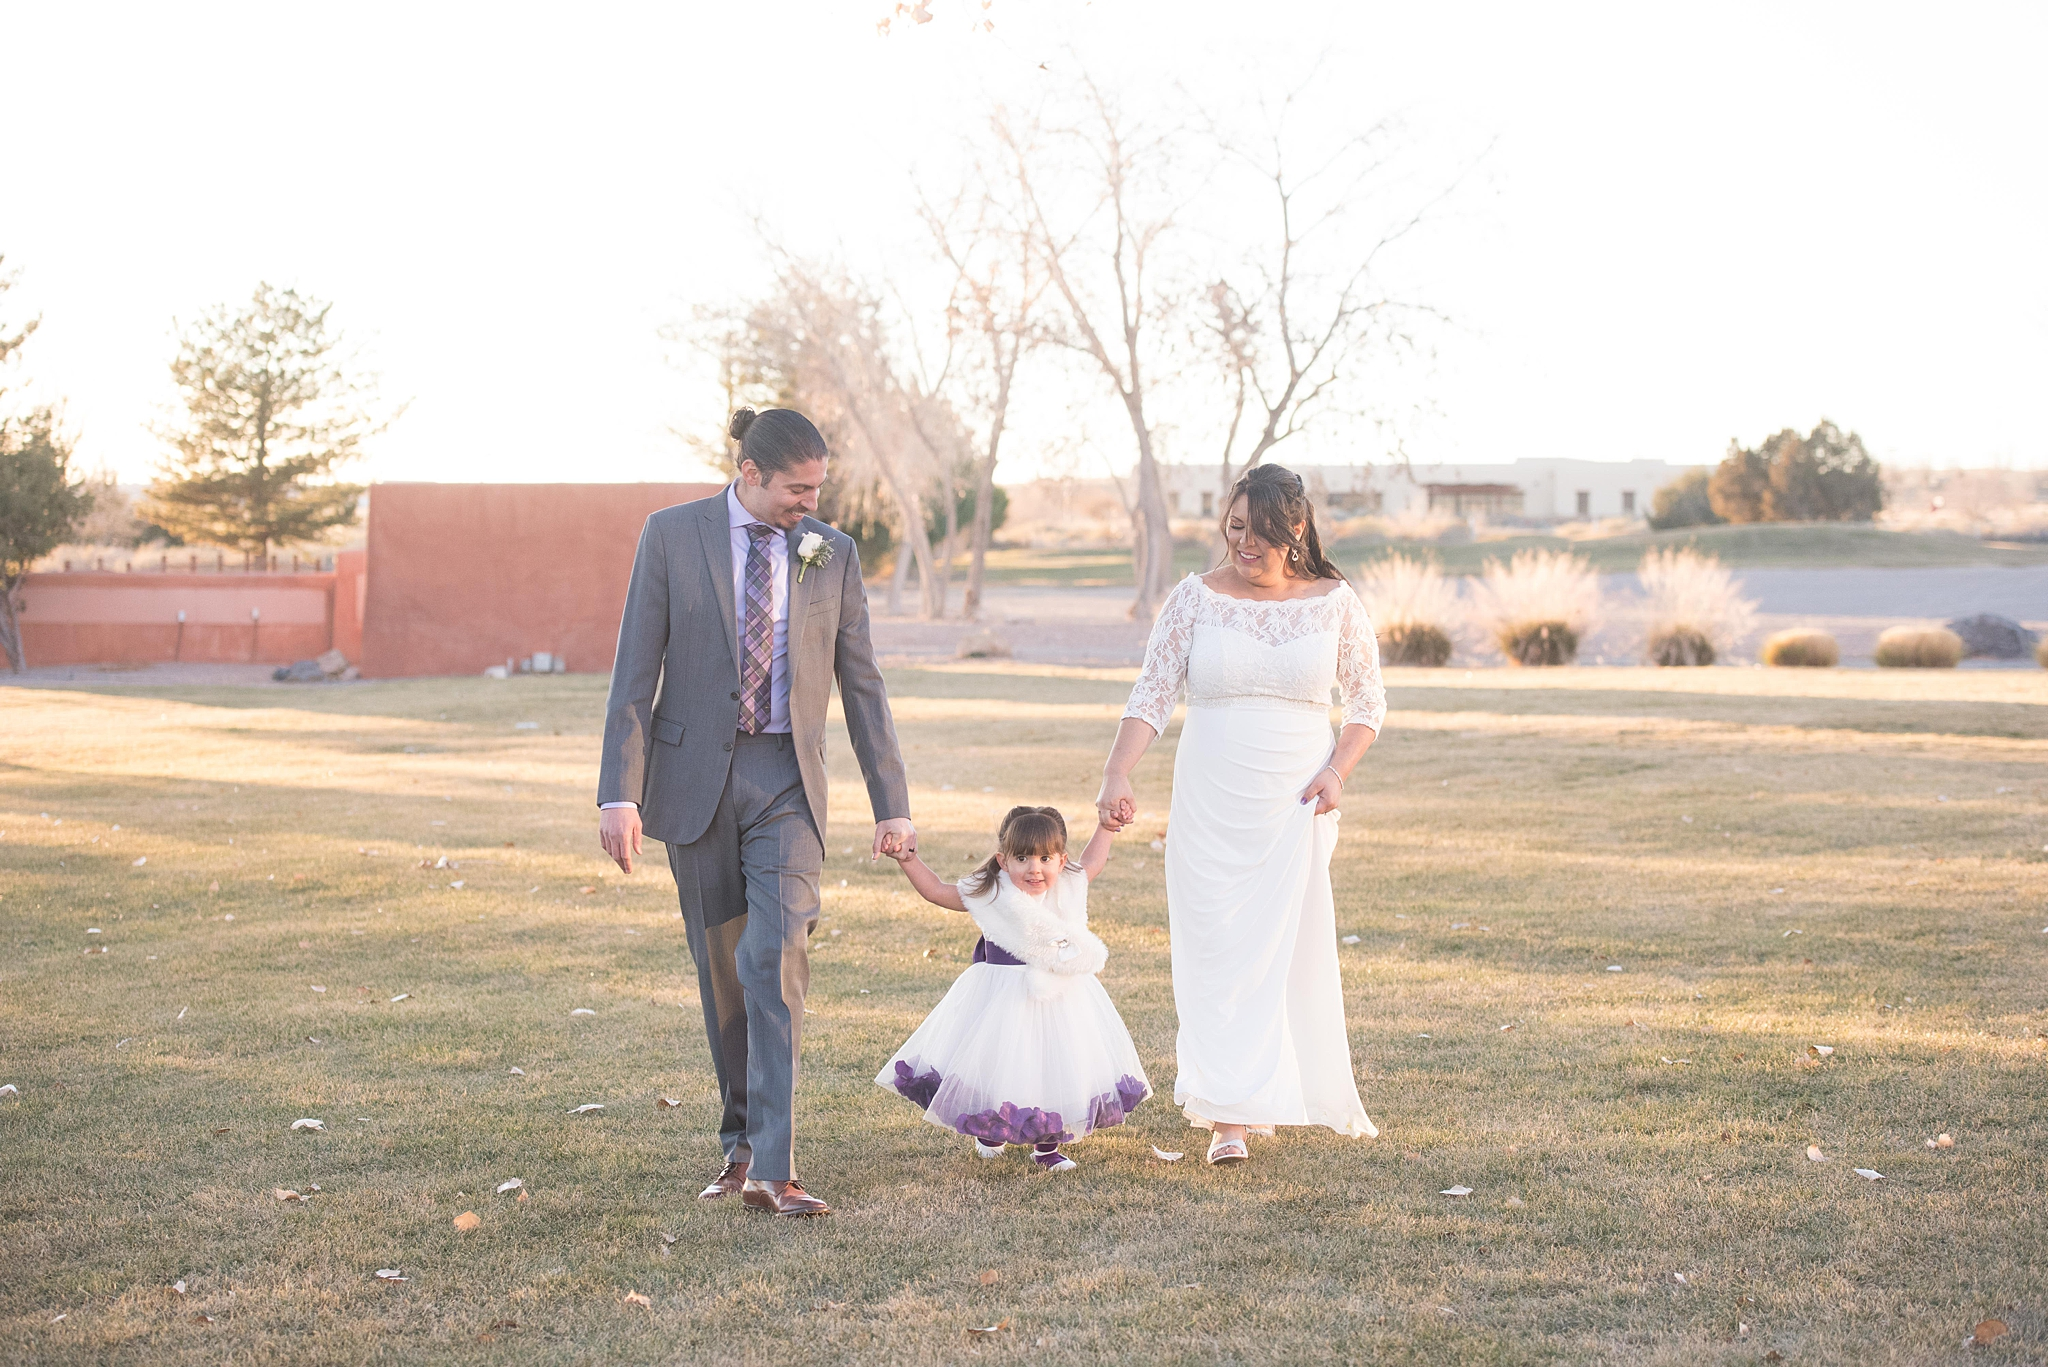 kaylakittsphotography-travis-michelle-prairie-star-albuquerque-wedding-photographer_0025.jpg